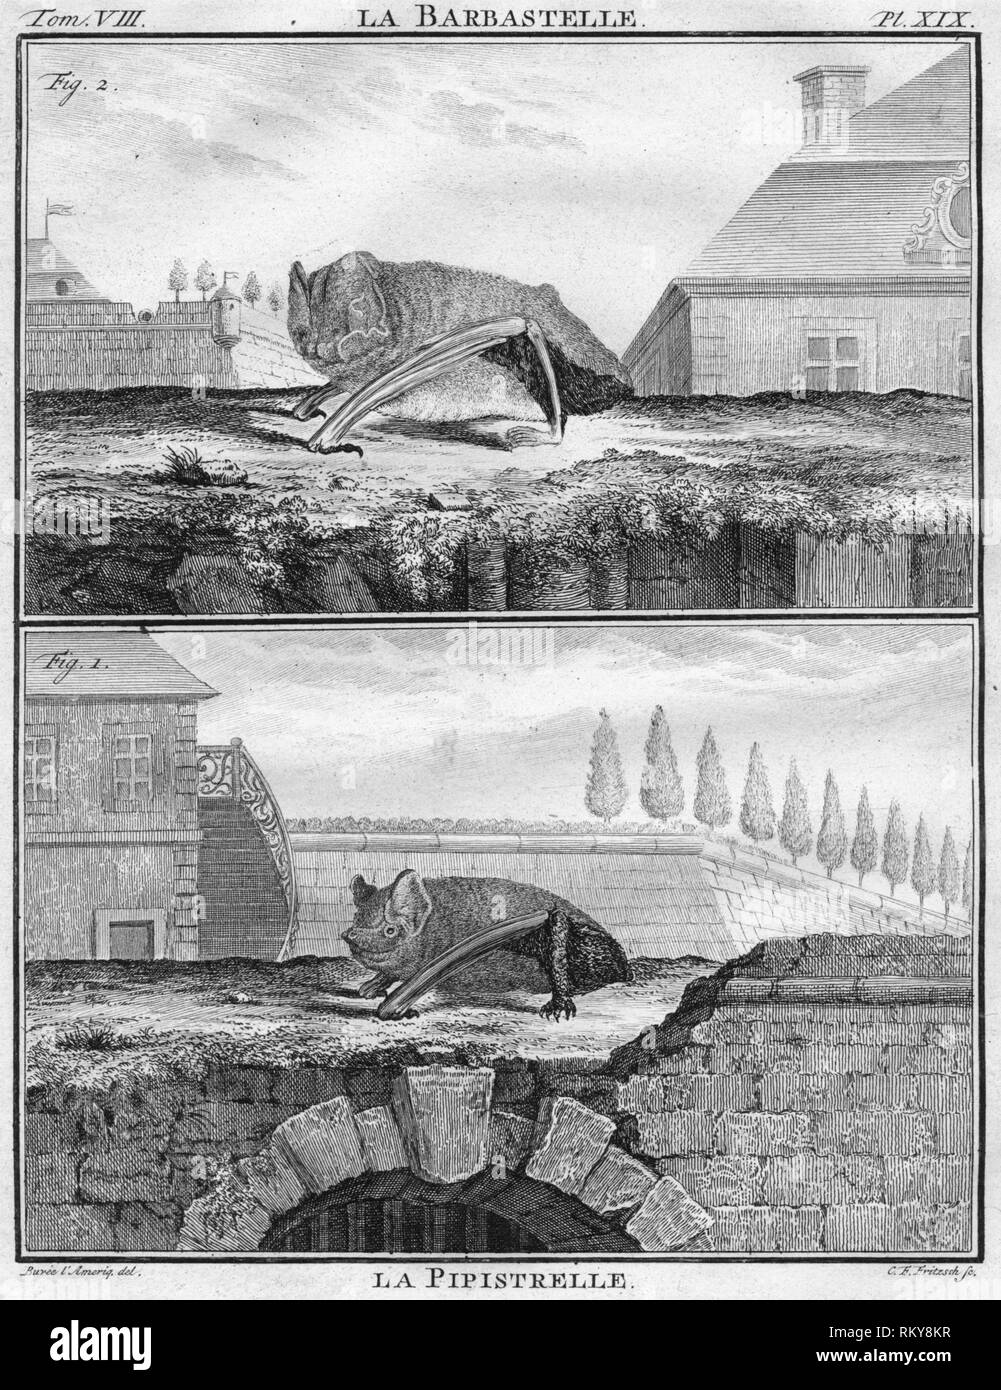 """'La Barbastelle & La Pipistrelle', c1763. The barbastelle bat and the pipistrelle bat. The """"Histoire Naturelle, générale et particulière, avec la description du Cabinet du Roi"""", (Natural History, General and Particular, with a Description of the King's Cabinet) was written 1749-1804 by the Comte de Buffon, and was continued after his death. It was a monumental work in multiple volumes, and covered what was known of the 'natural sciences' at the time, including physics, chemistry and technology as well as the natural history of animals. - Stock Image"""